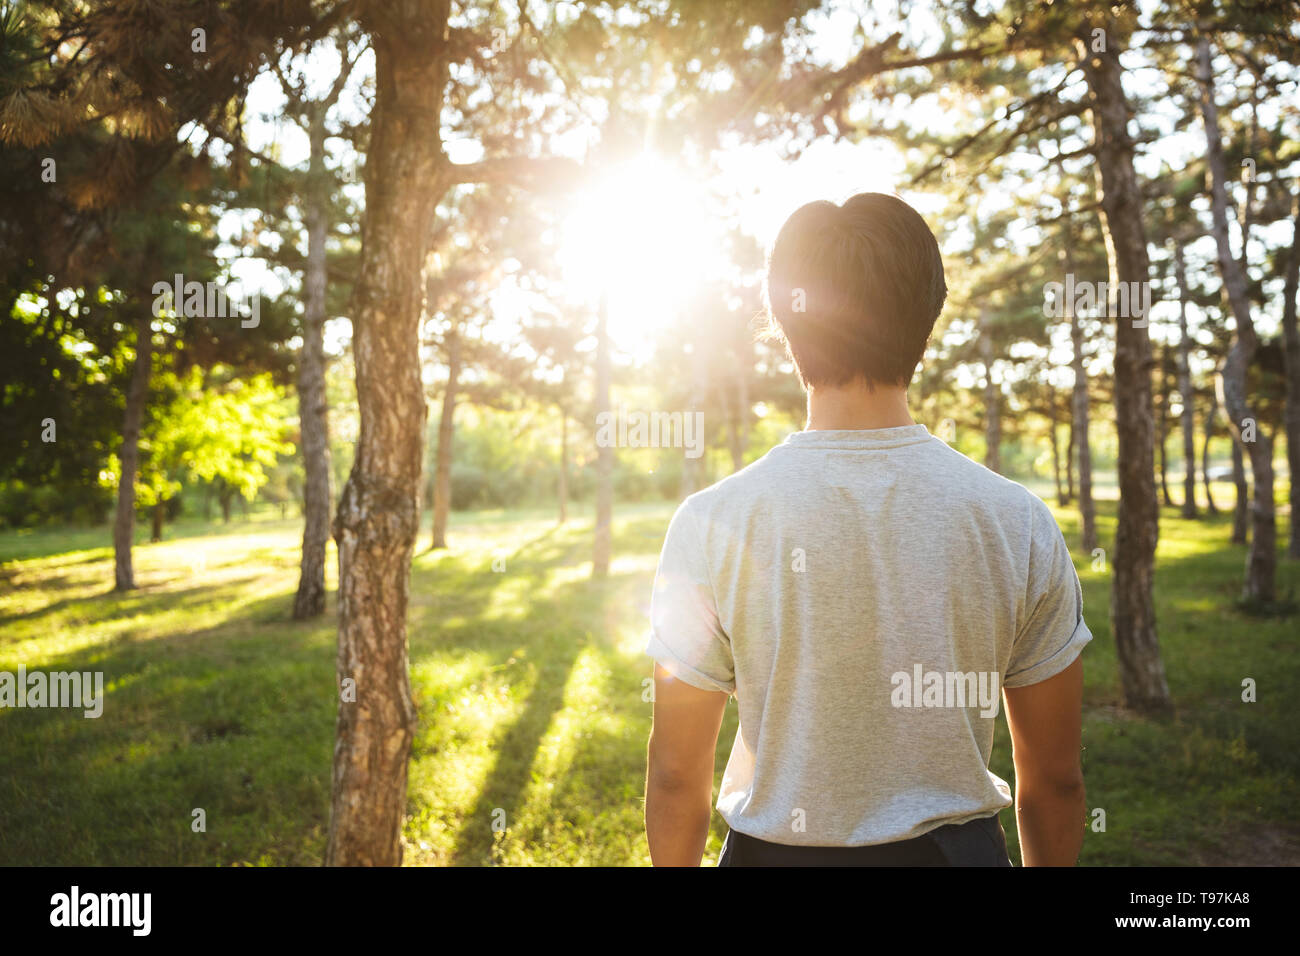 Back view of a young asian man wearing sportswear standing outdoors - Stock Image